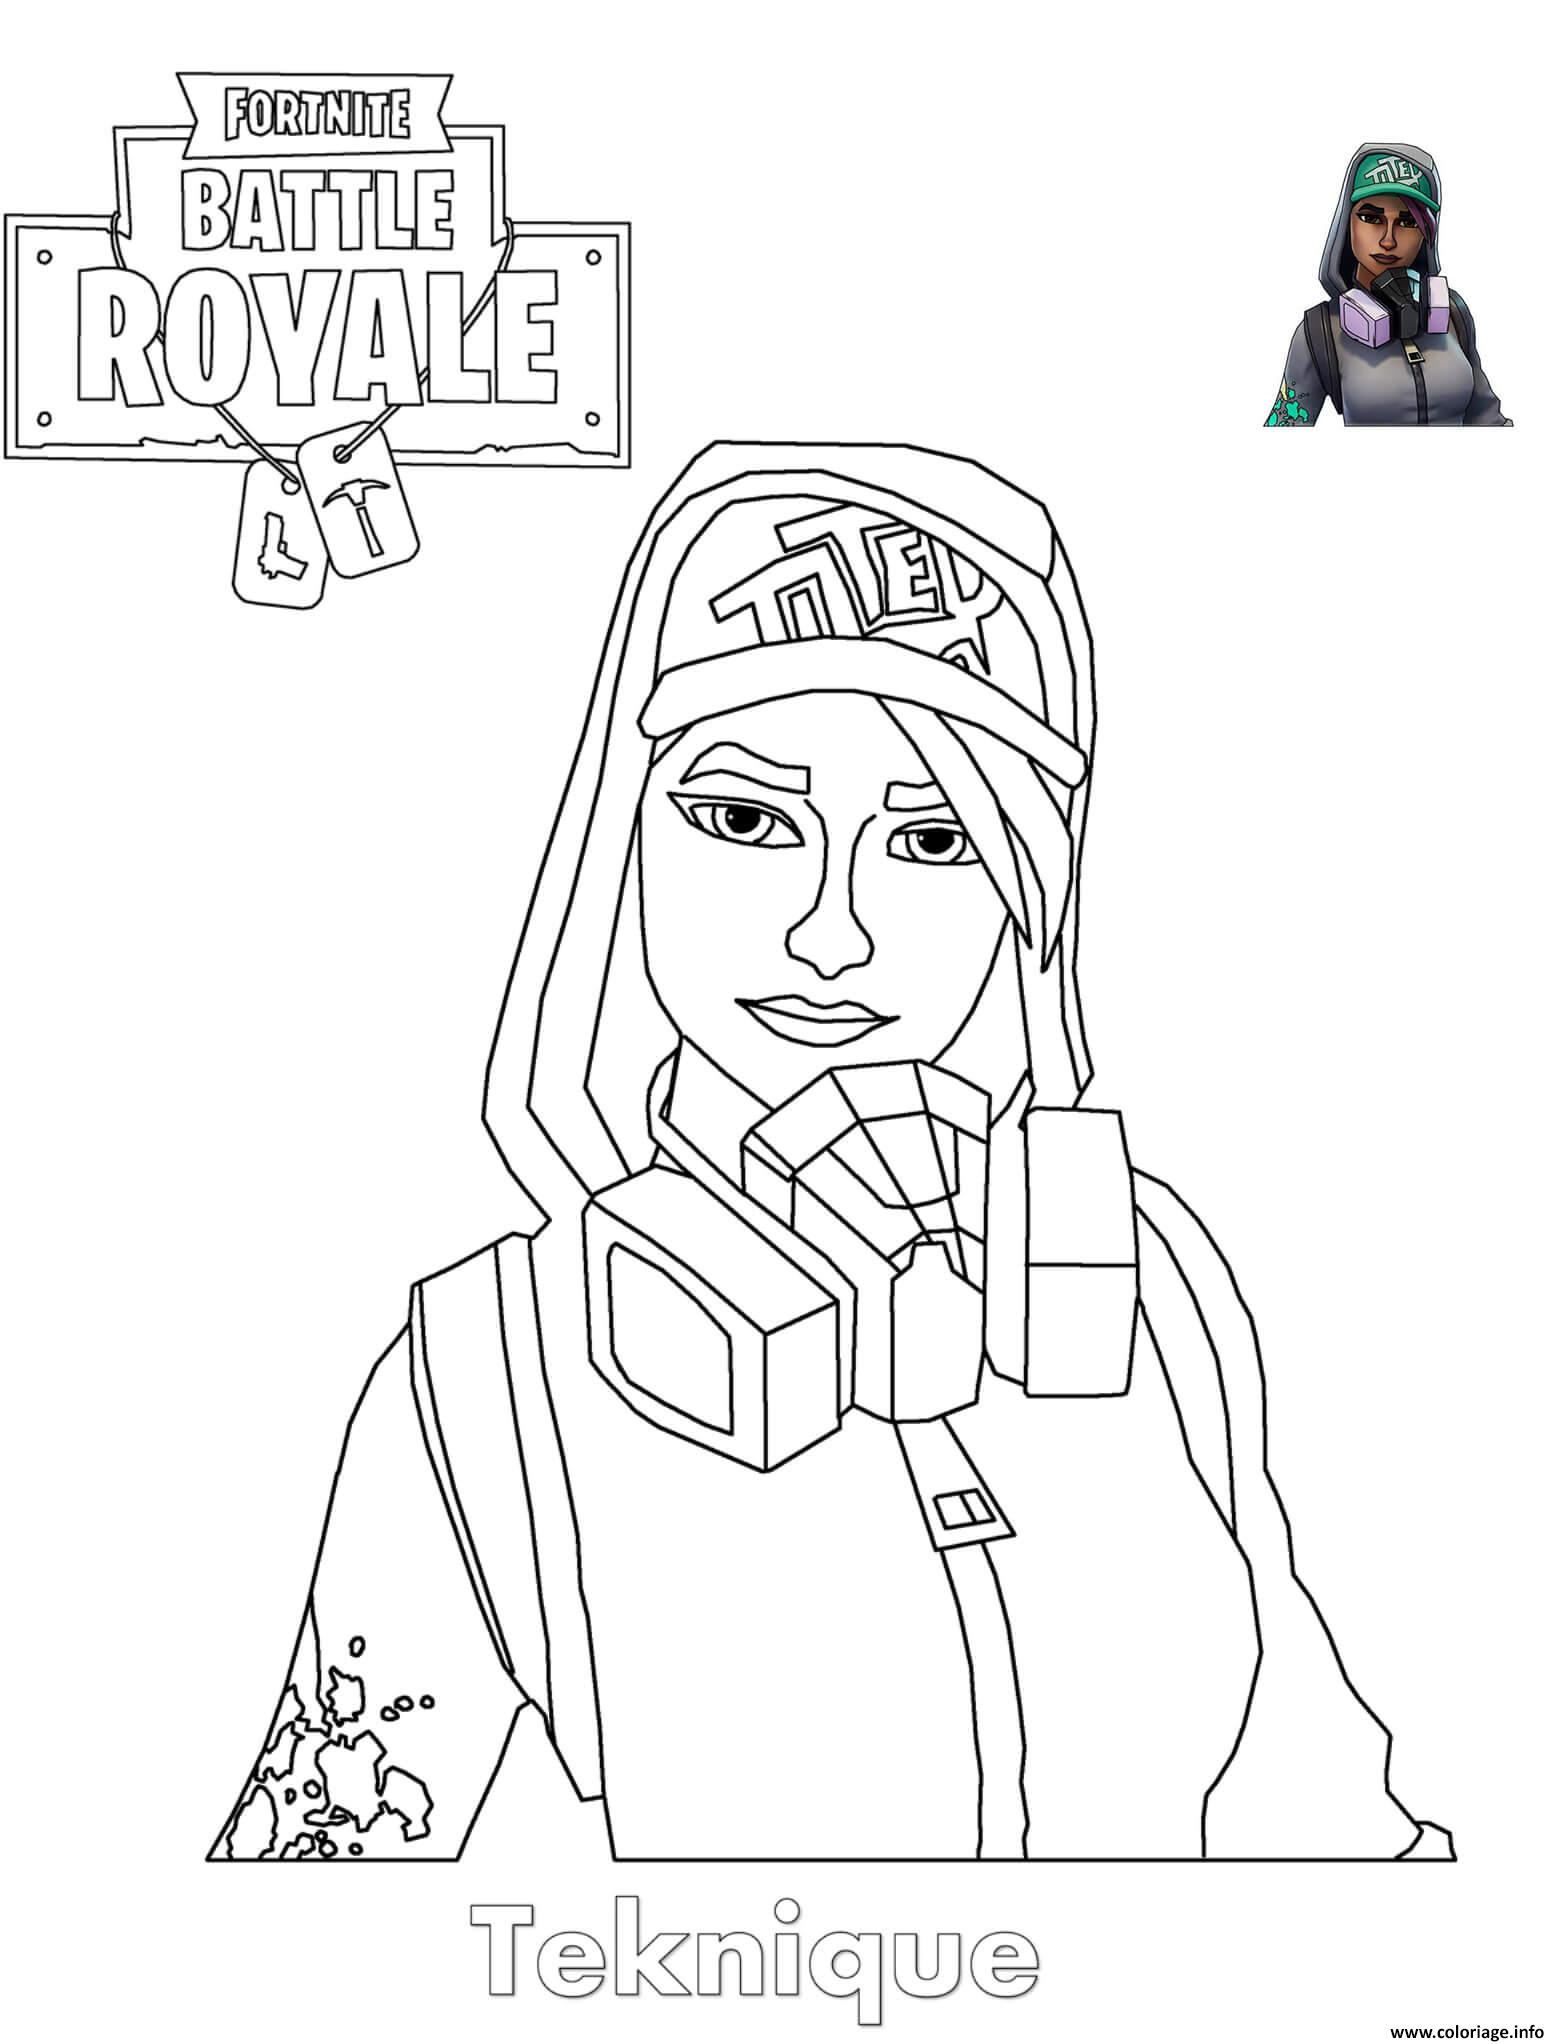 Coloriage Teknique Fortnite Girl Dessin